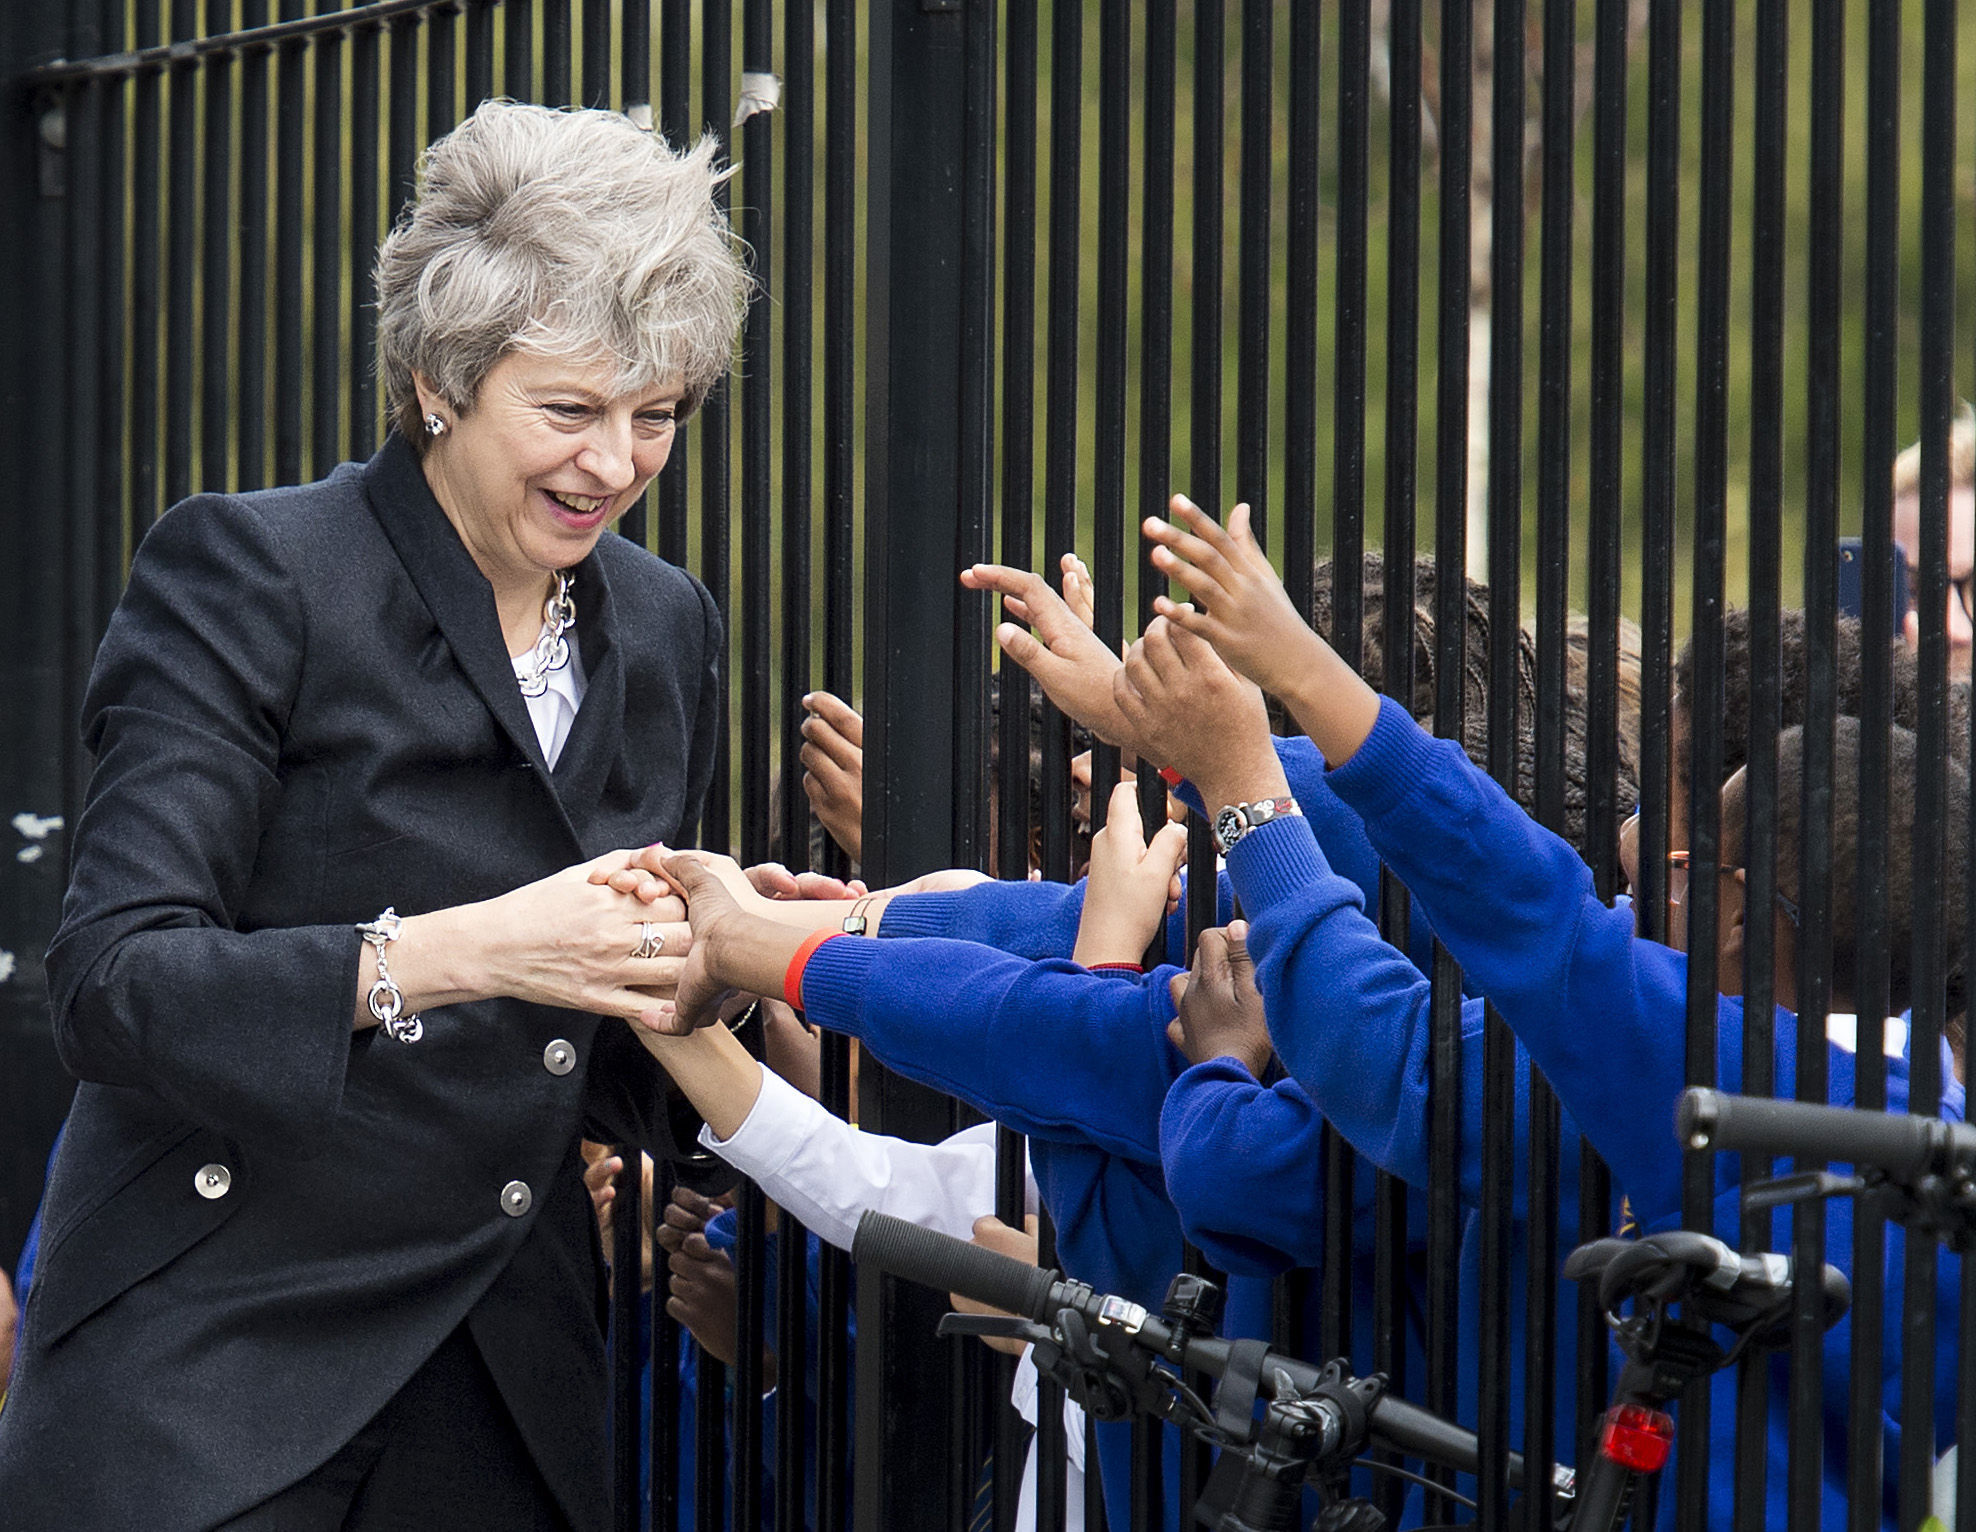 Embargoed to 2230 Monday October 9..Prime Minister Theresa May is greeted by primary pupils during a visit to the Dunraven School in Streatham, south London, ahead of the publication of details of the Government's Race Disparity Audit. PRESS ASSOCIATI